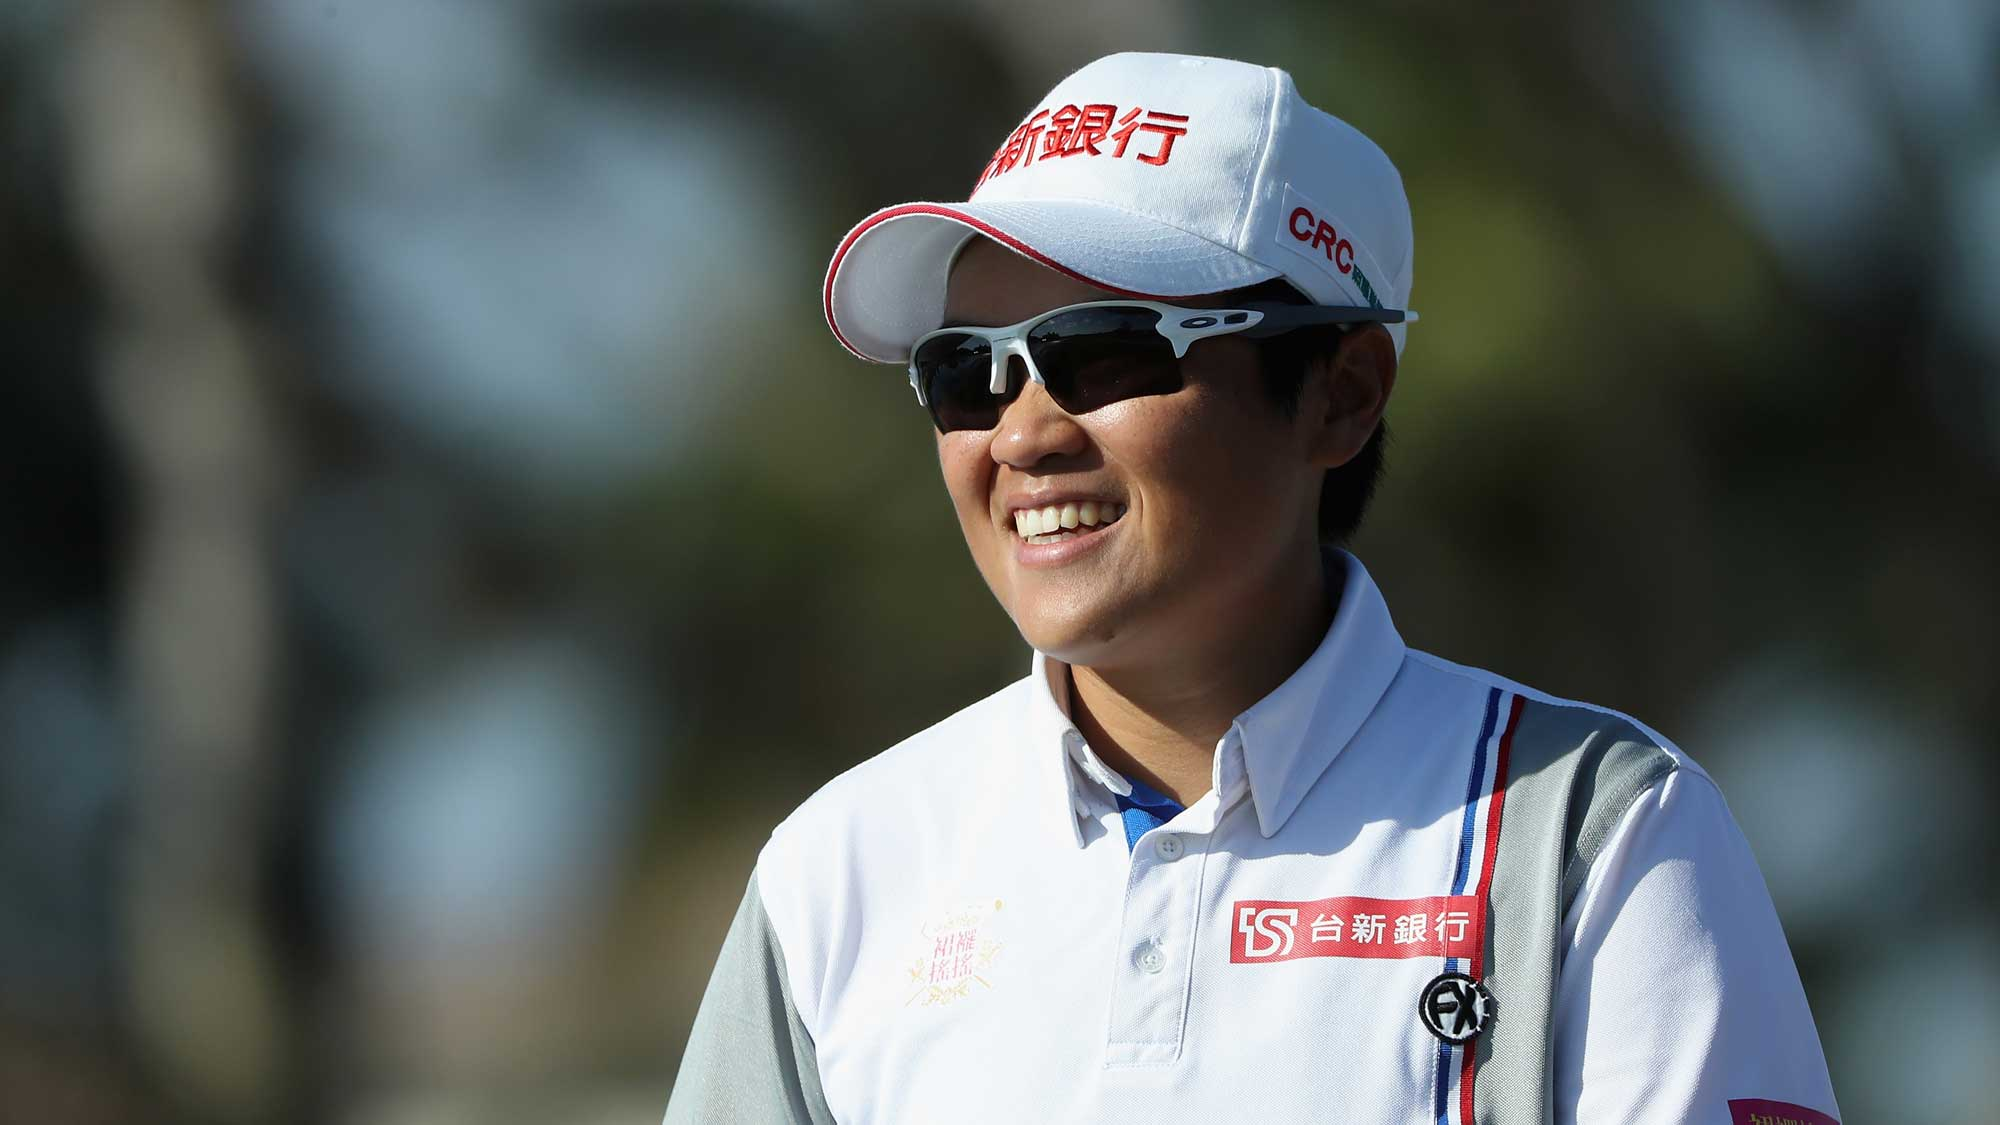 Peiyun Chien of Taiwan reacts on the ninth hole during round one of the CME Group Tour Championship